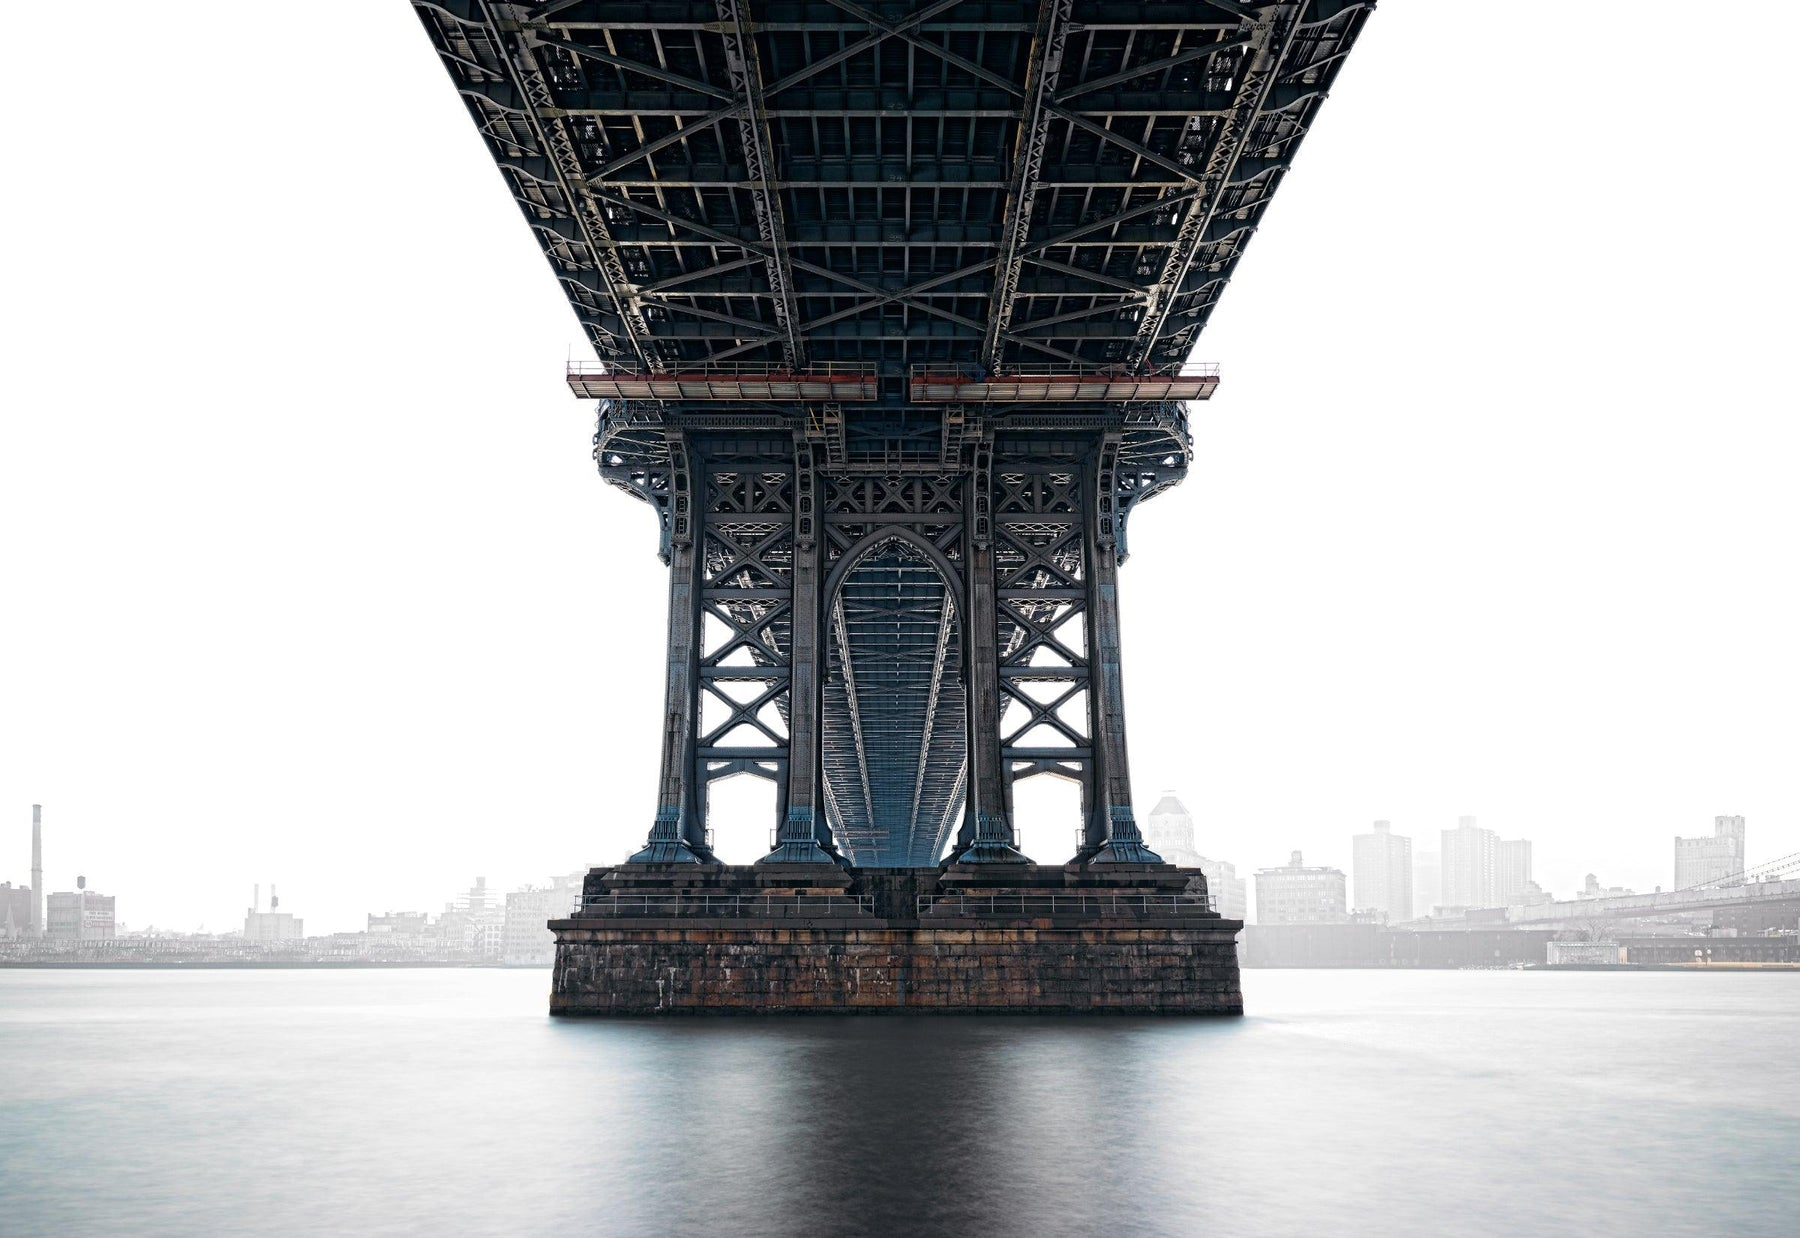 View from under the Manhattan Bridge with the city of New York overexposed in the background